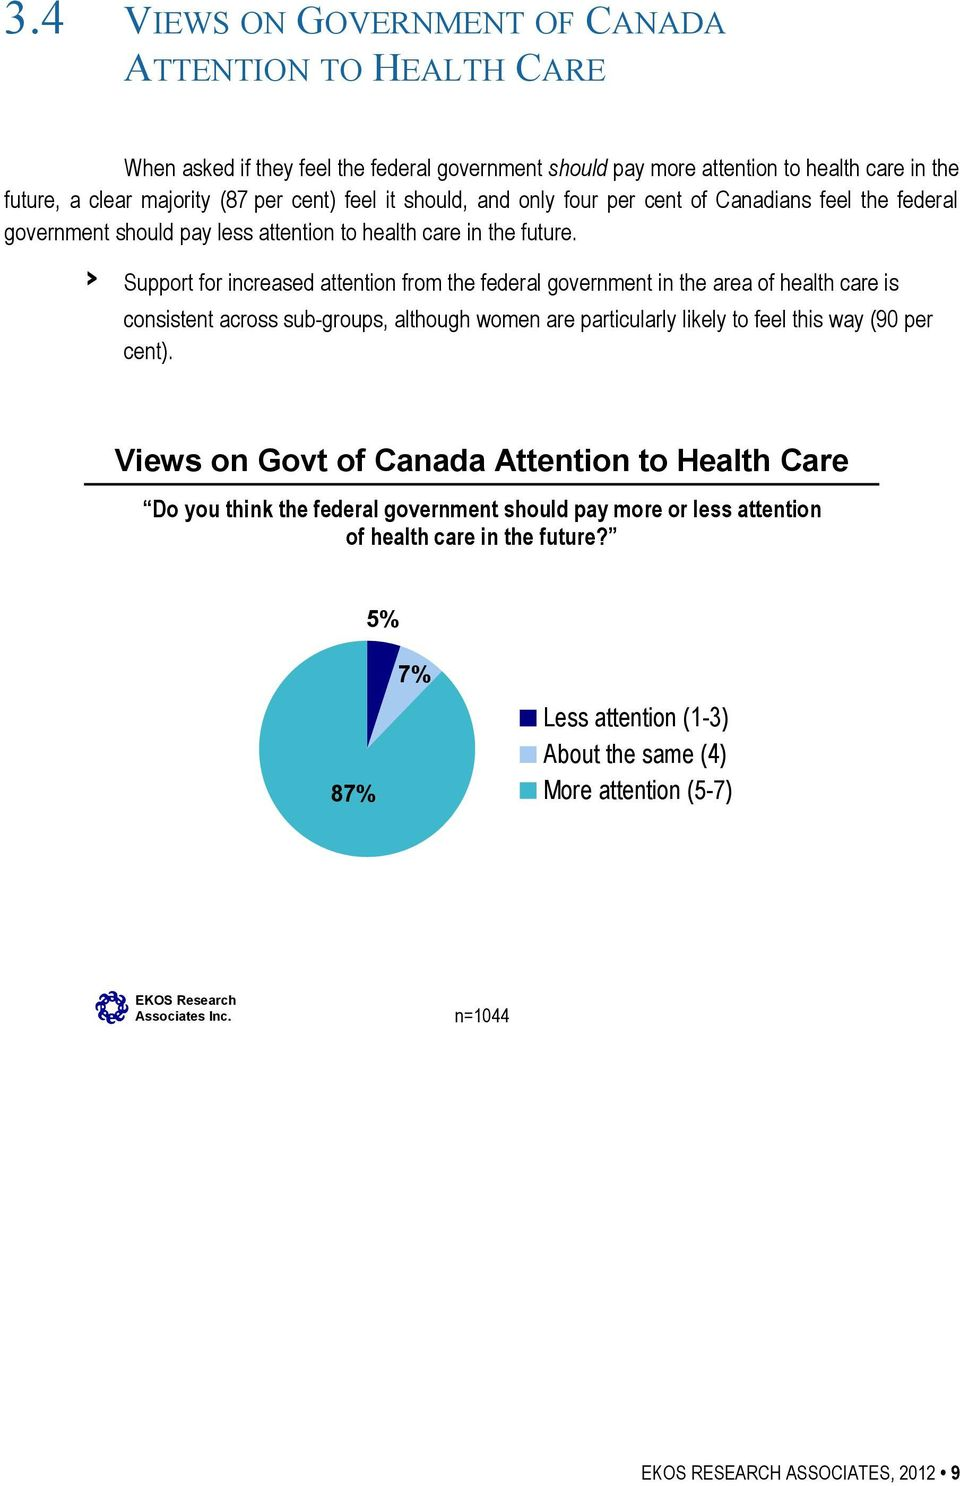 Support for increased attention from the federal government in the area of health care is consistent across sub-groups, although women are particularly likely to feel this way (90 per cent).